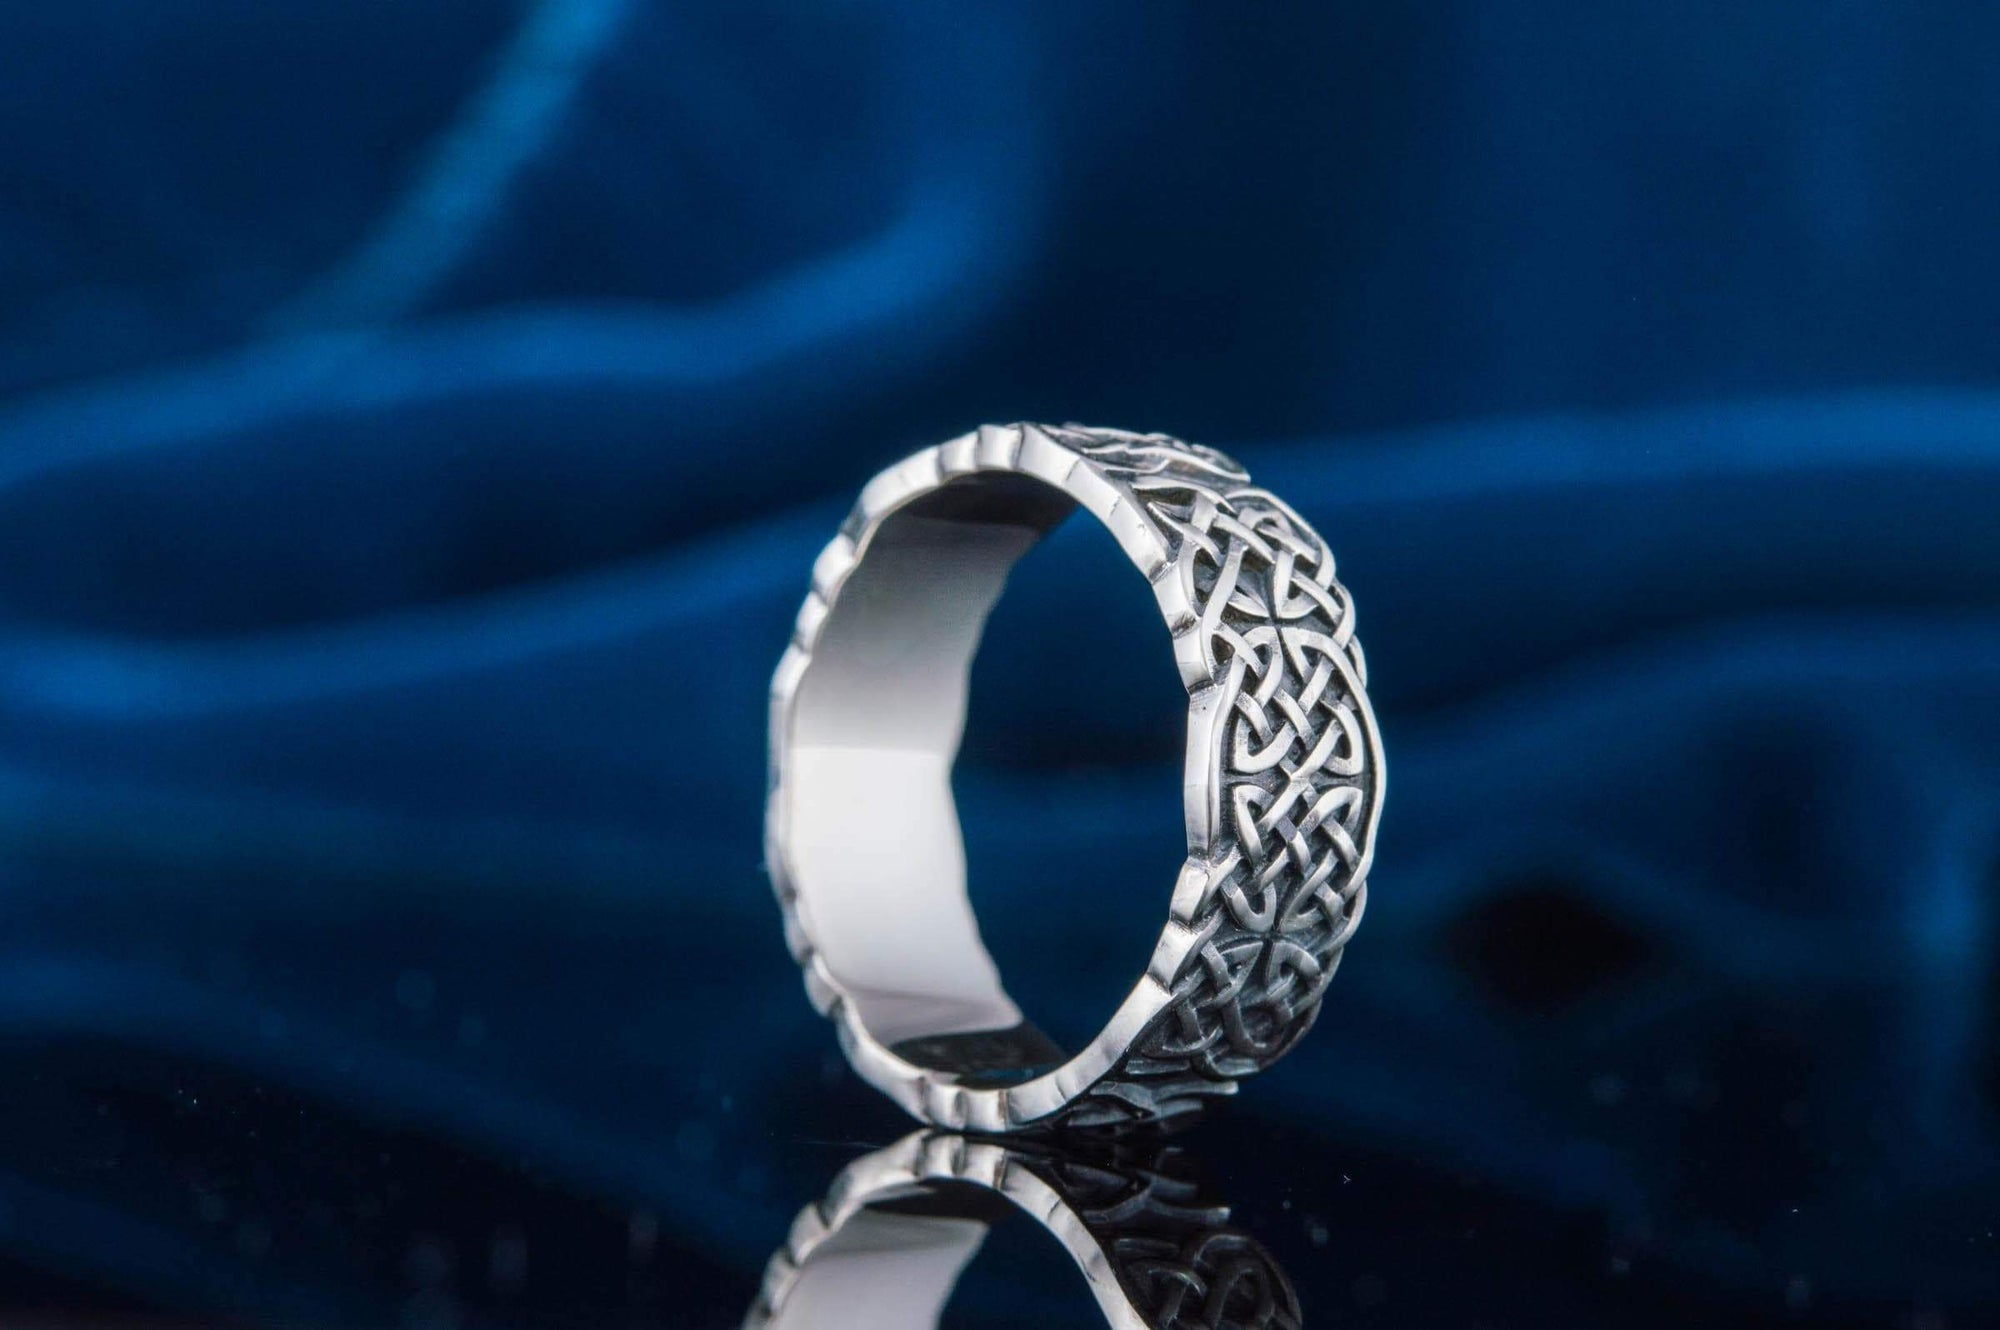 Rings Viking Celtic Knot Ornament Sterling Silver Ring Ancient Treasures Ancientreasures Viking Odin Thor Mjolnir Celtic Ancient Egypt Norse Norse Mythology